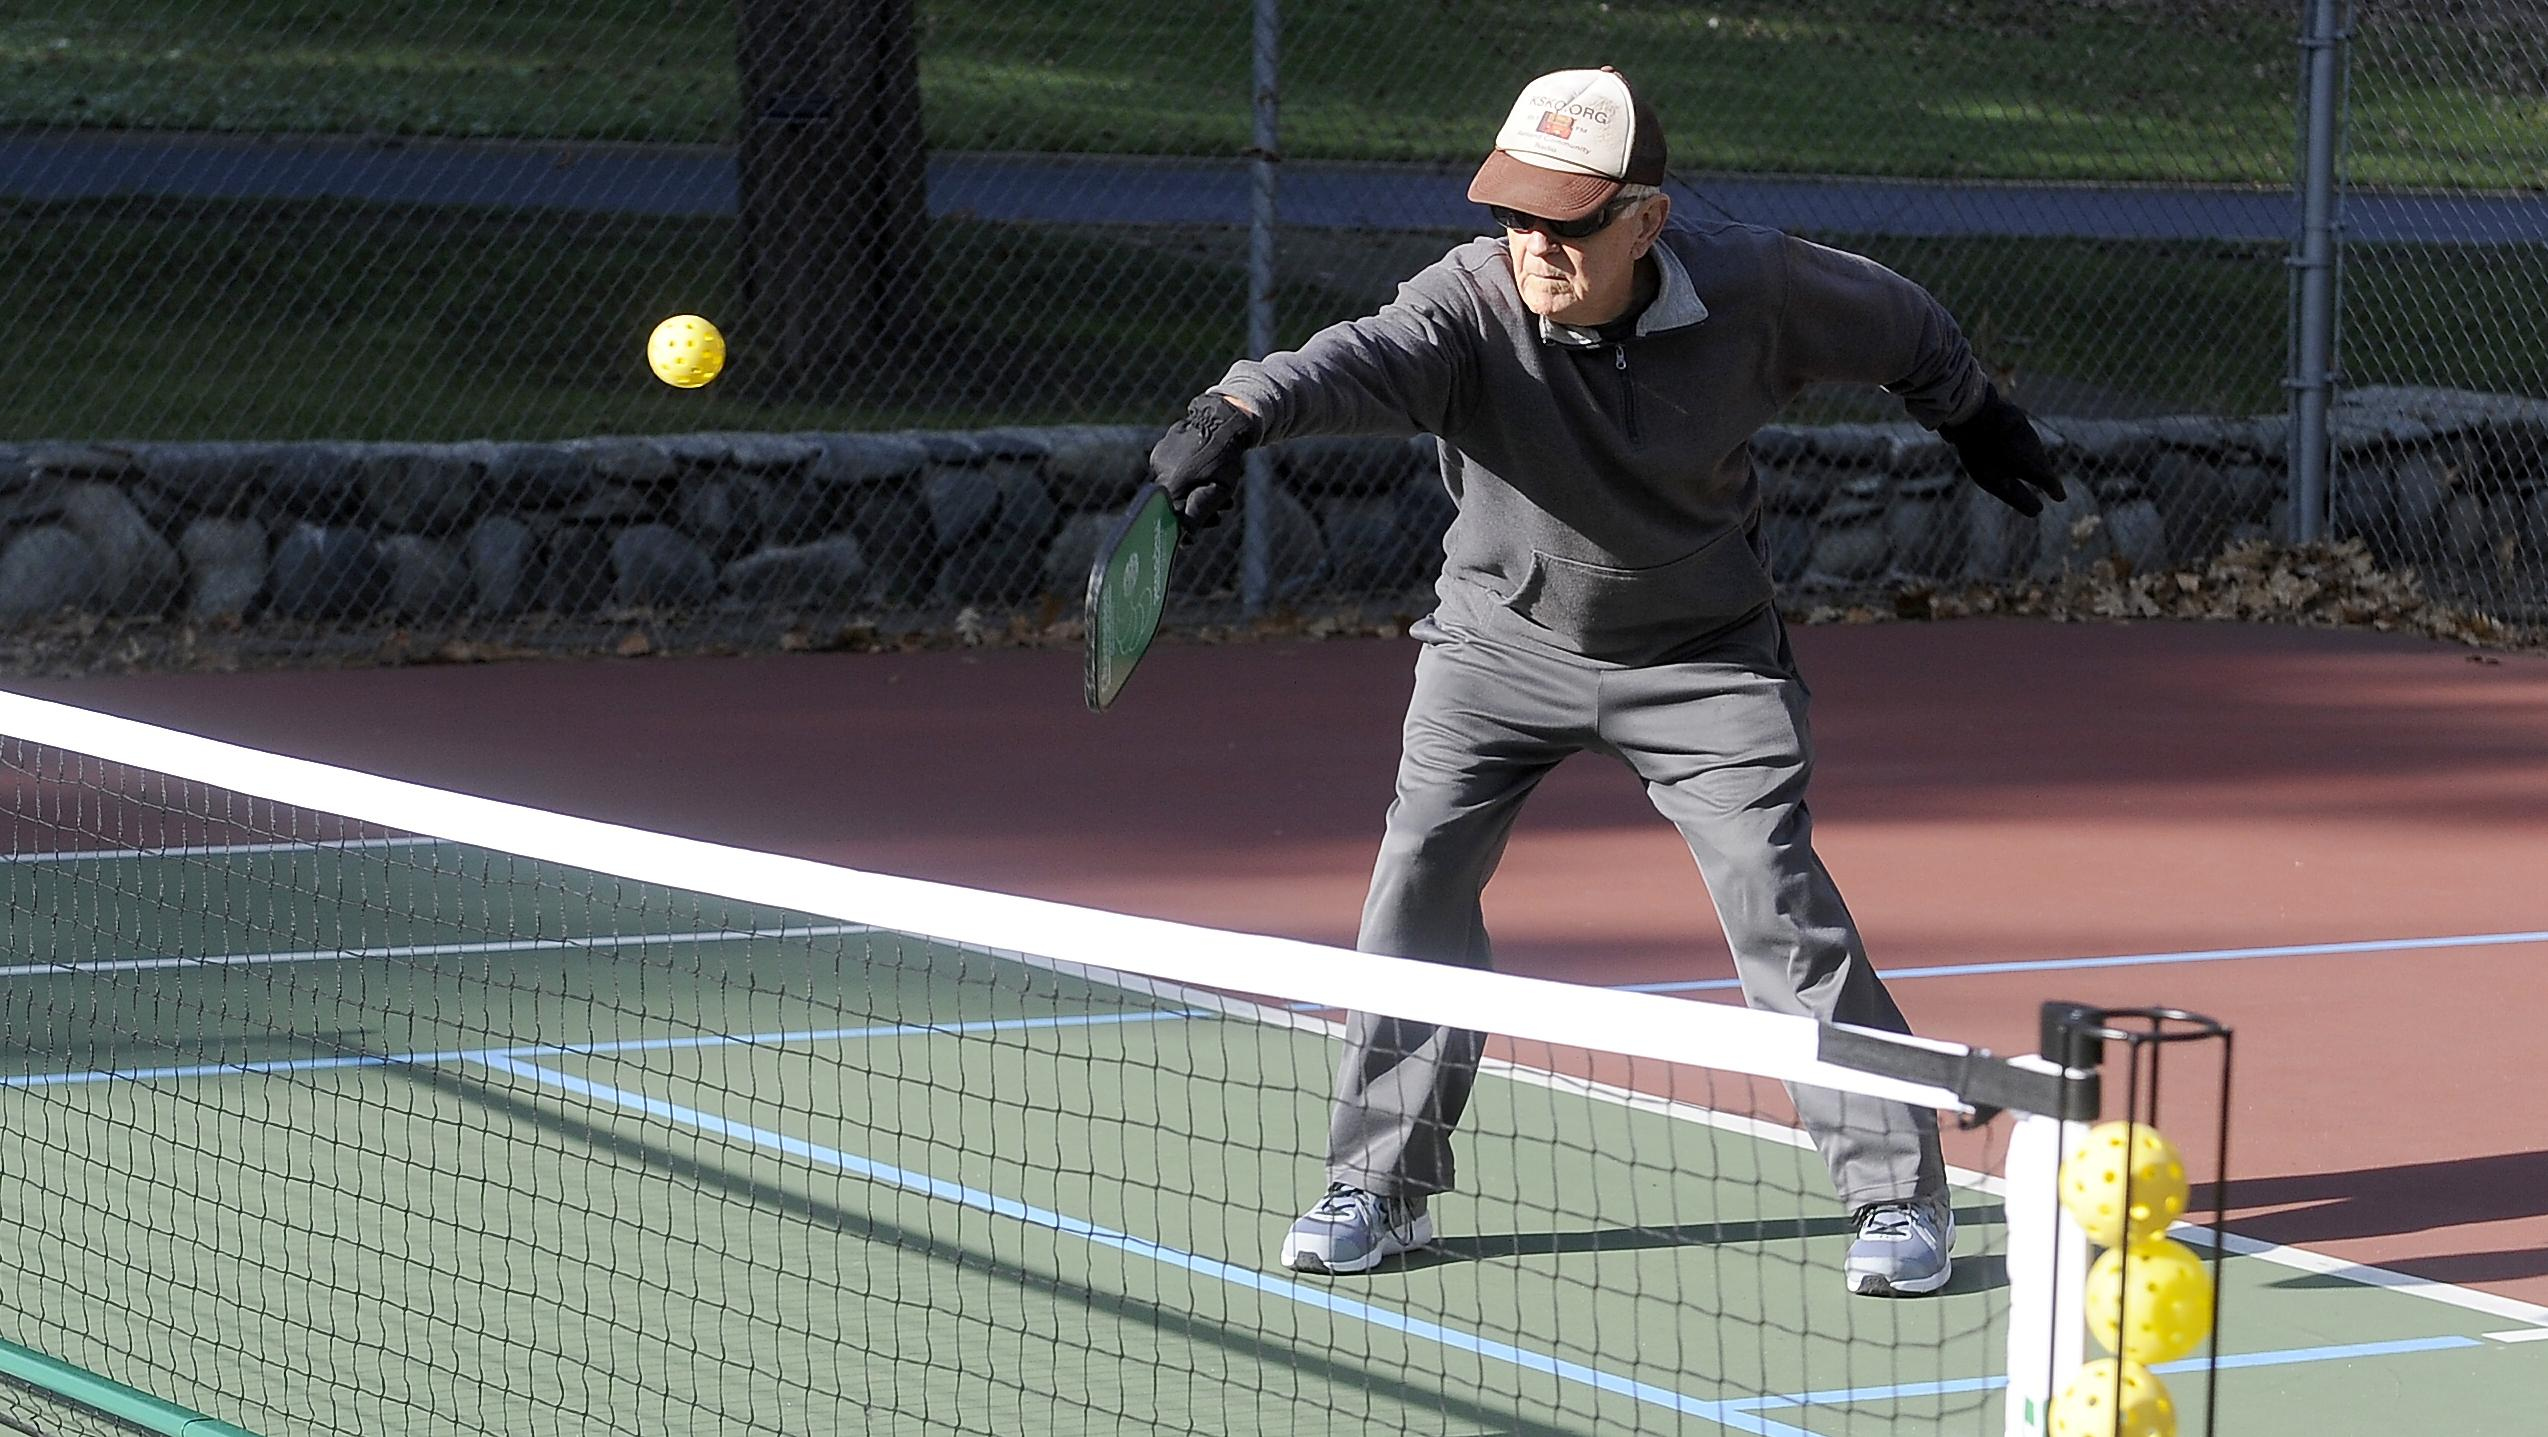 Bob Valine makes a hit over the net playing a match of pickleball in Lithia Park. [Mail Tribune / Andy Atkinson]